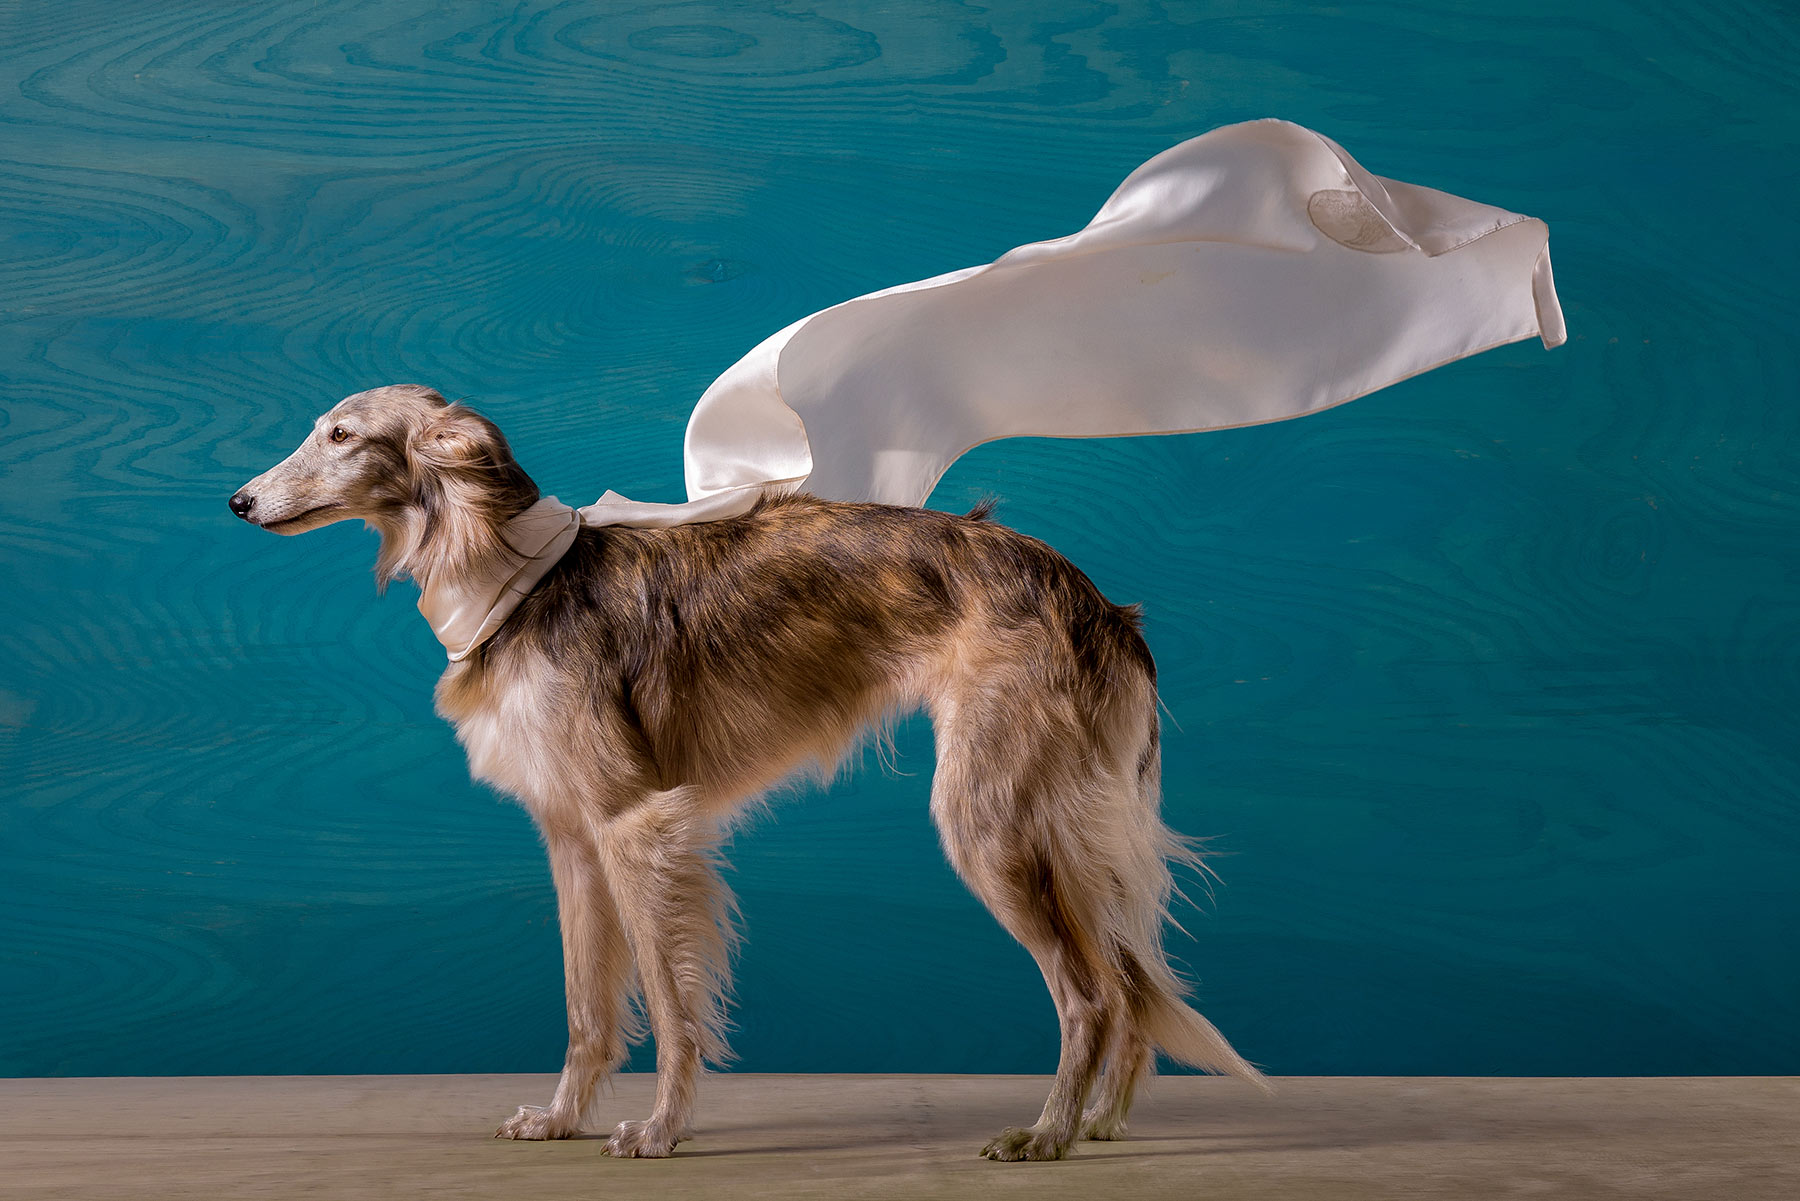 A-studio-portrait-of-a-hound-dog-wearing-a-white-cape-against-a-blue-background